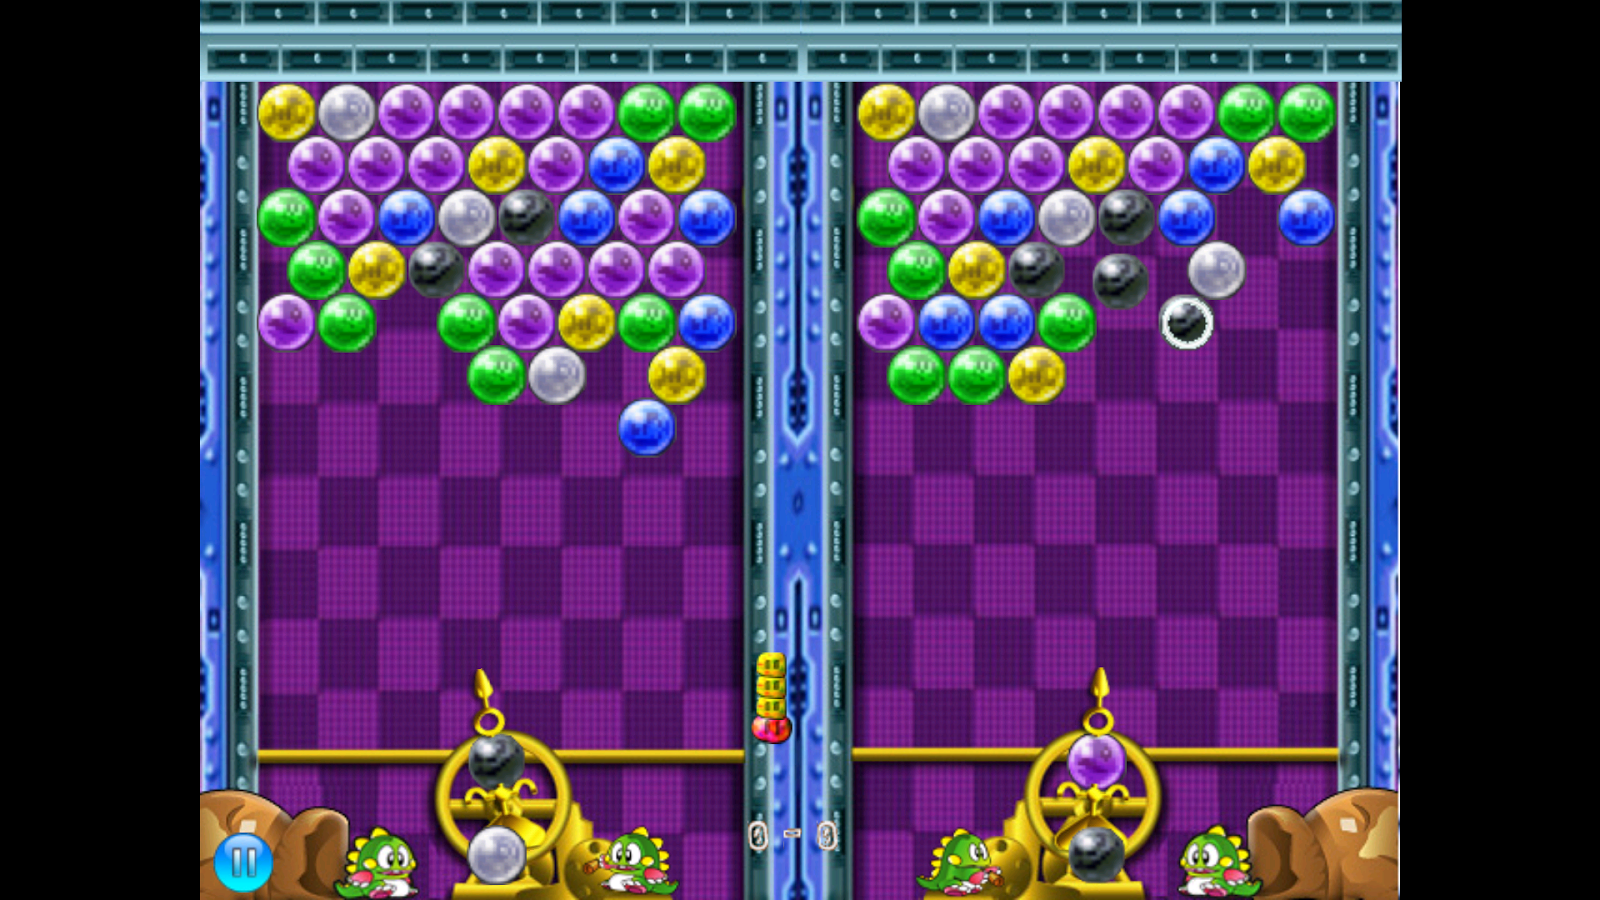 2 Player Games Puzzle Bobble Free Download Ocean Of Games